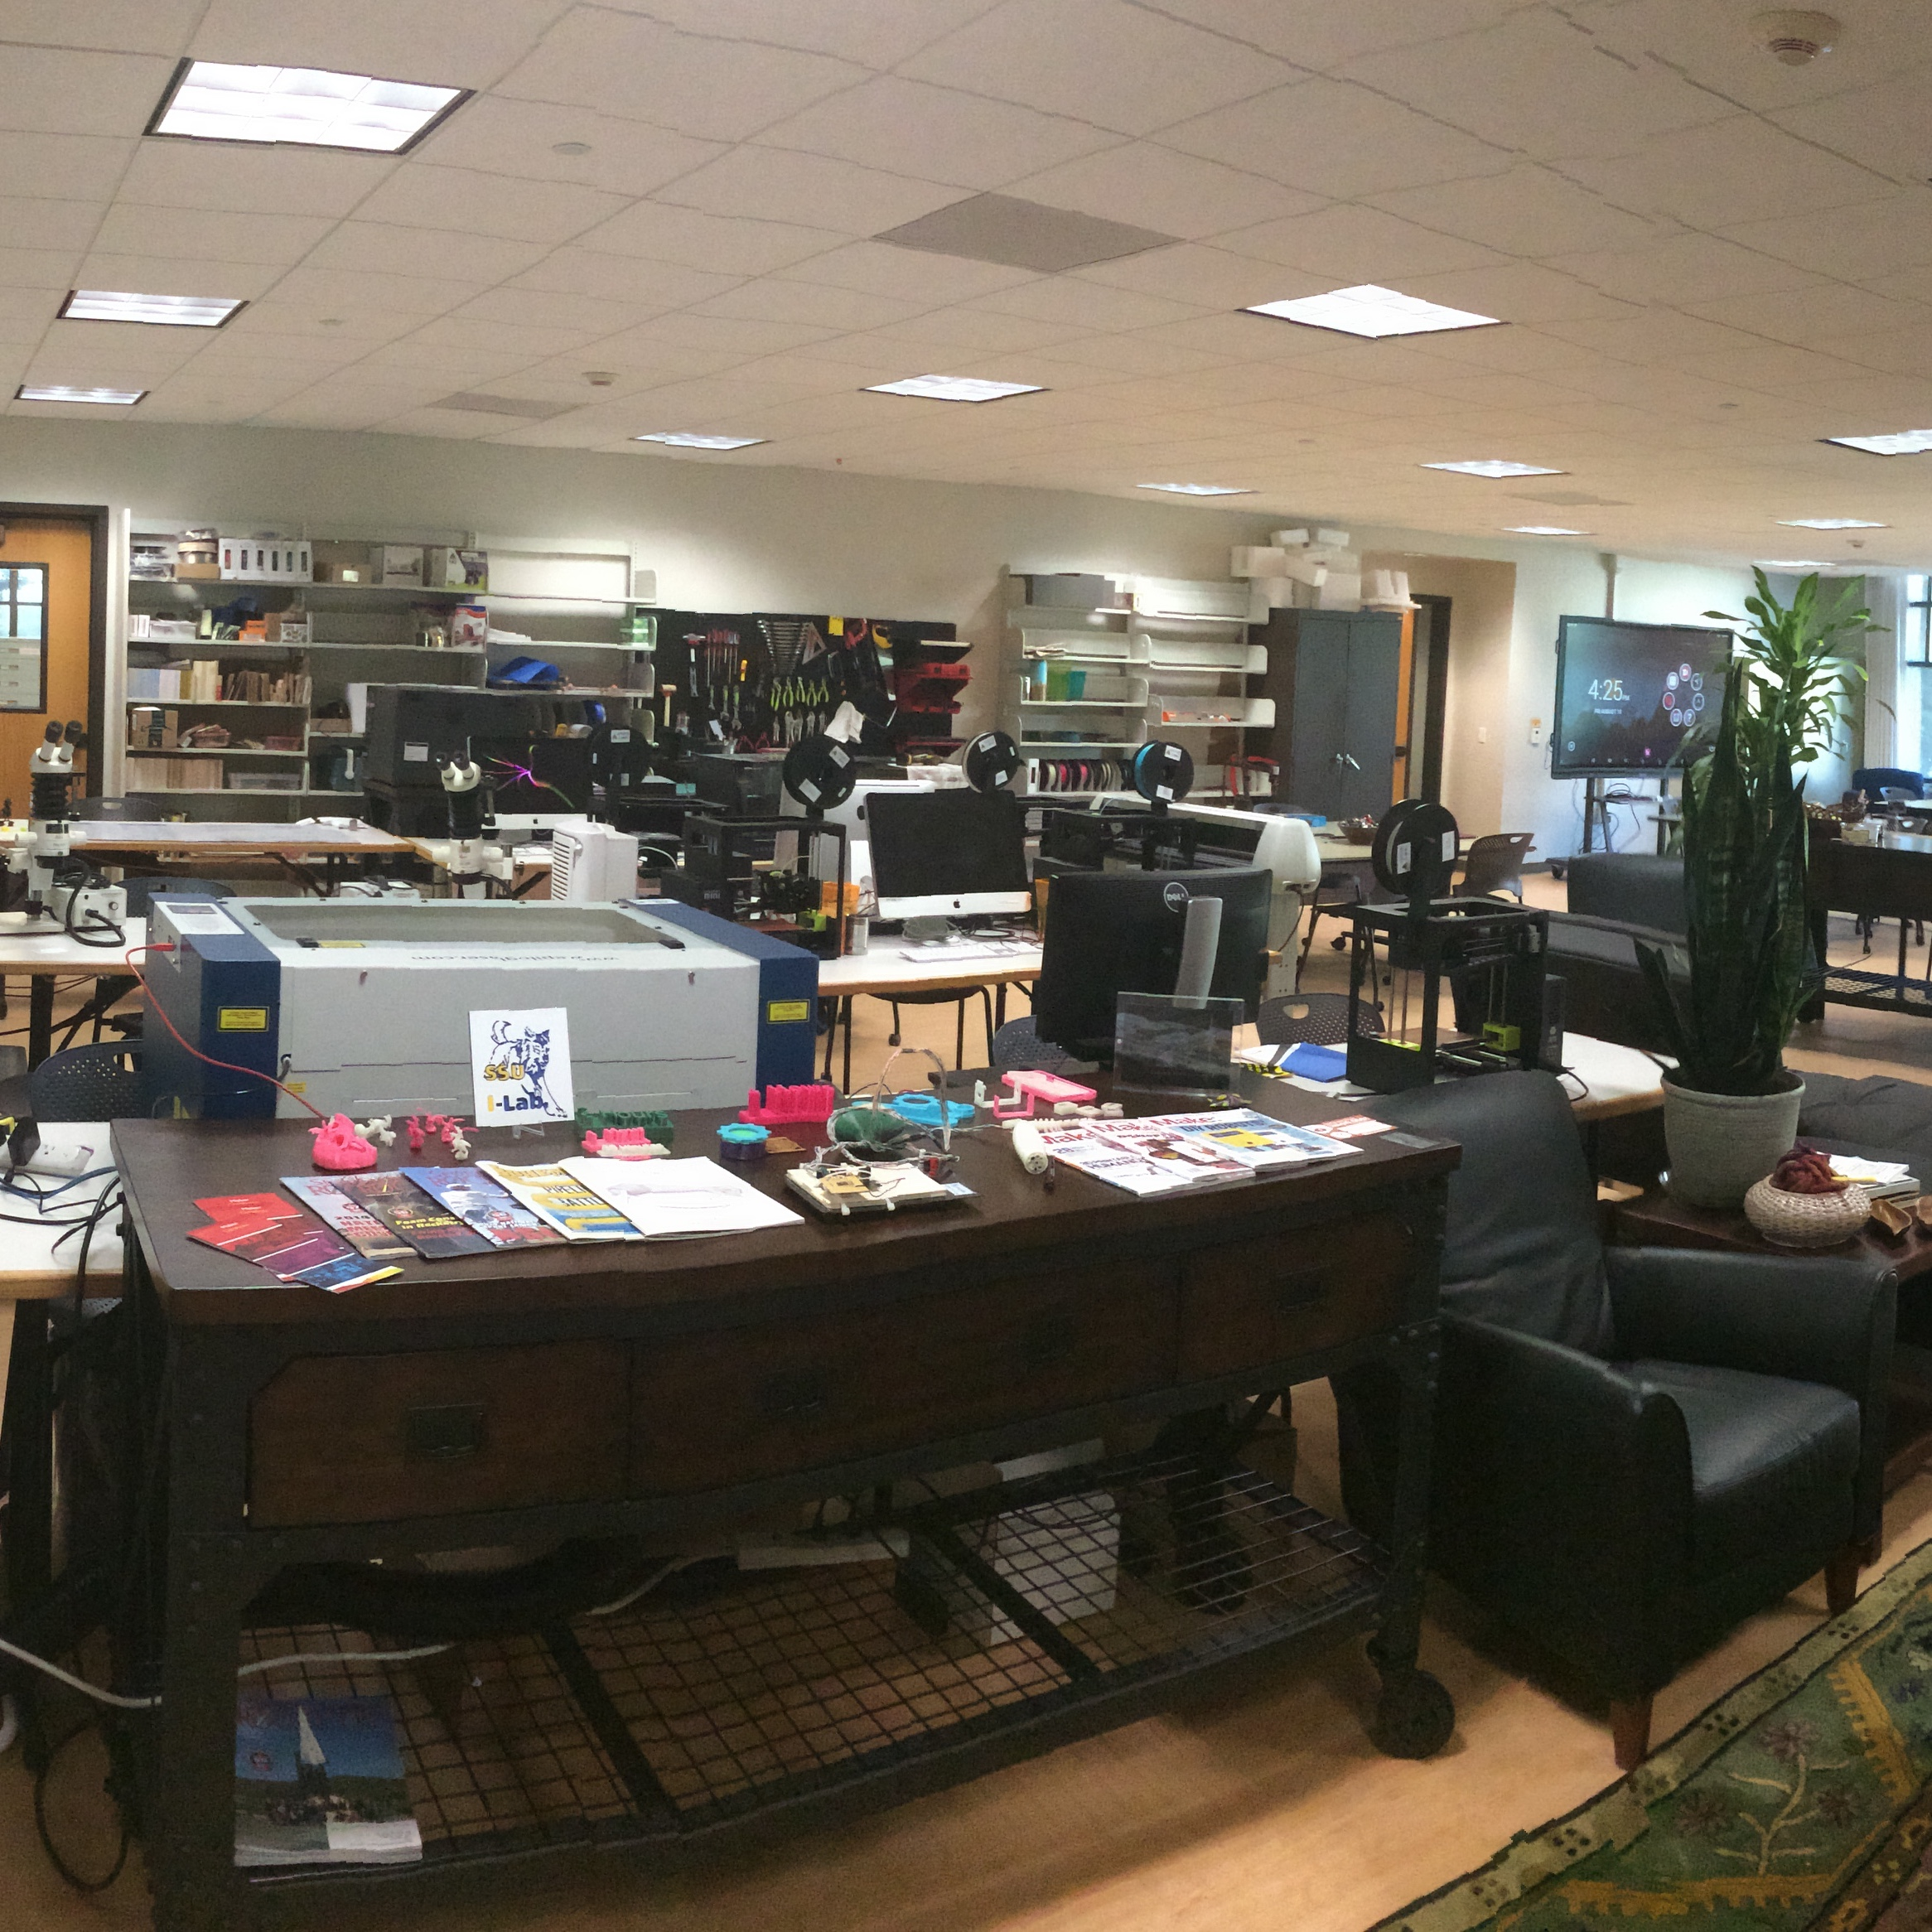 A fraction of a panoramic shot of the makerspace